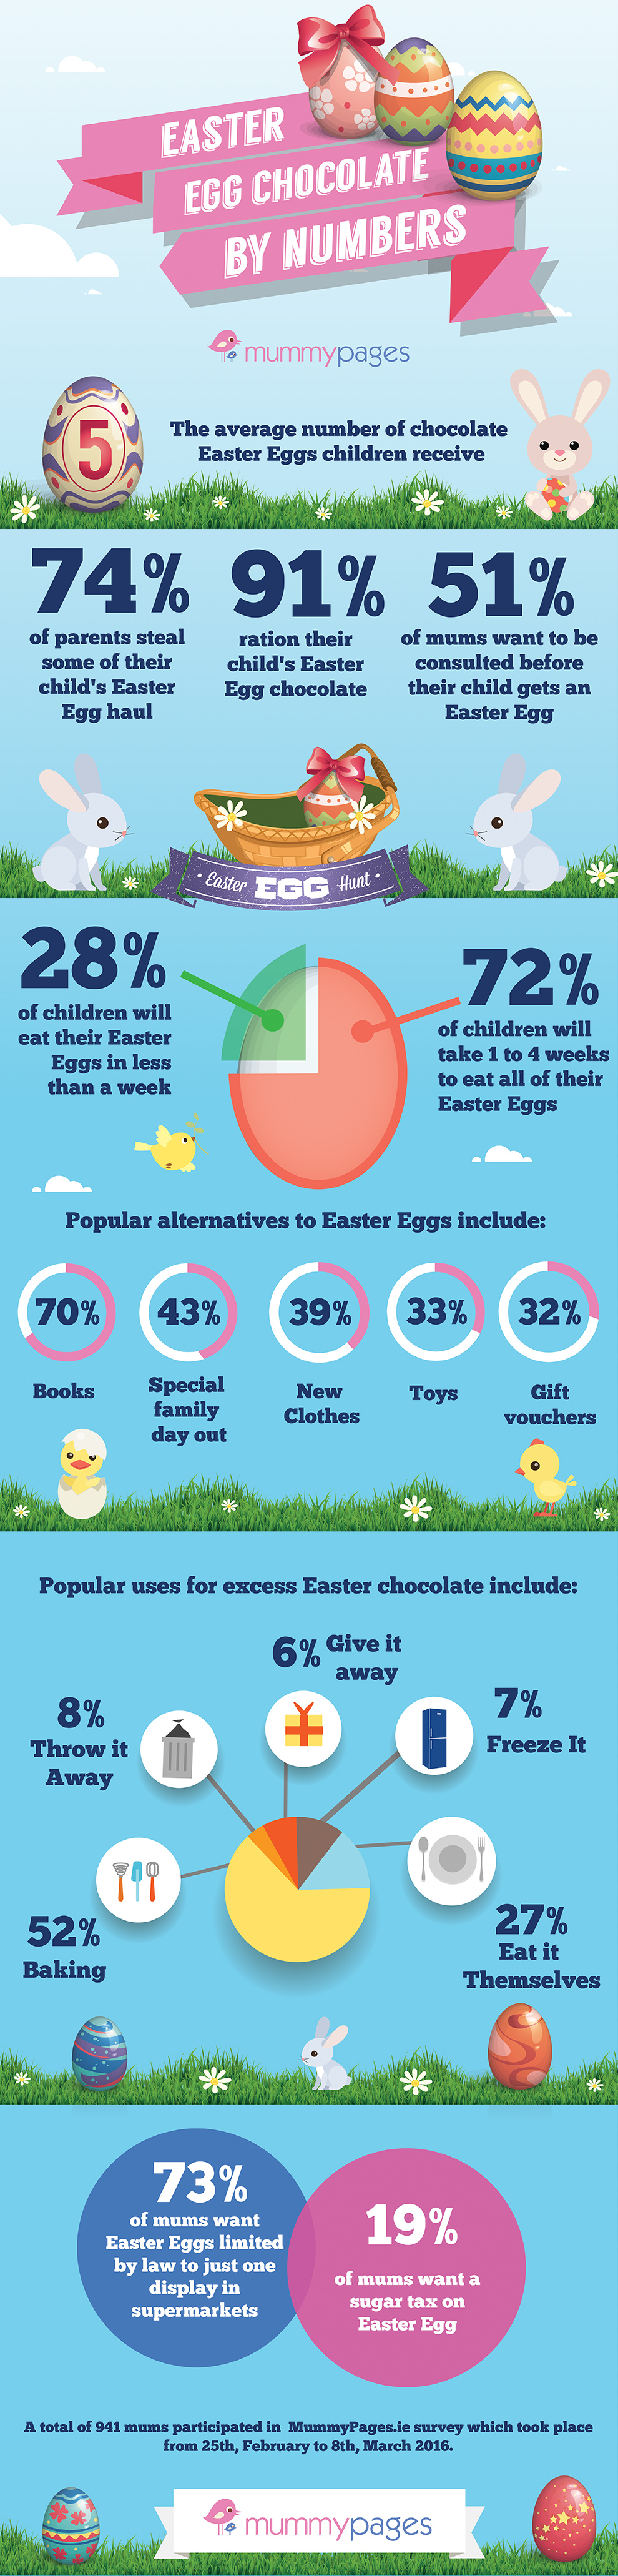 Infographic on Easter Eggs